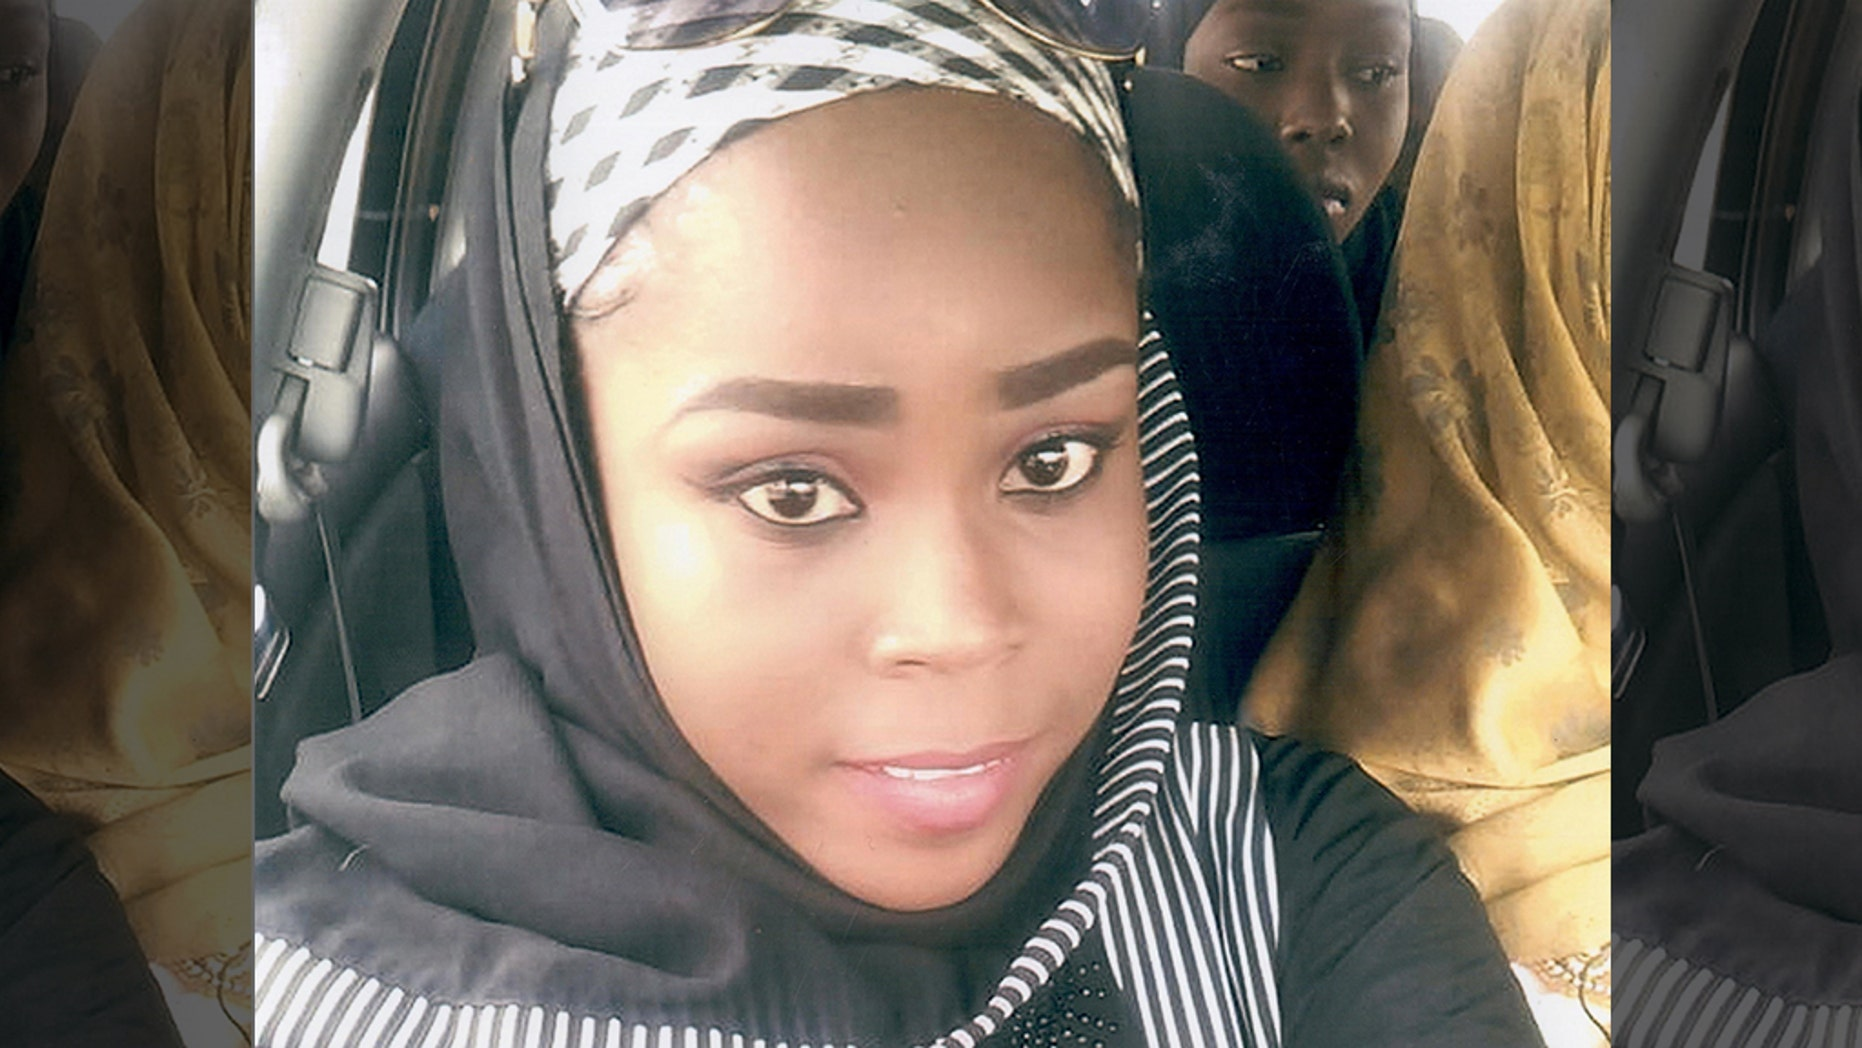 Abducted health worker, Hauwa, killed